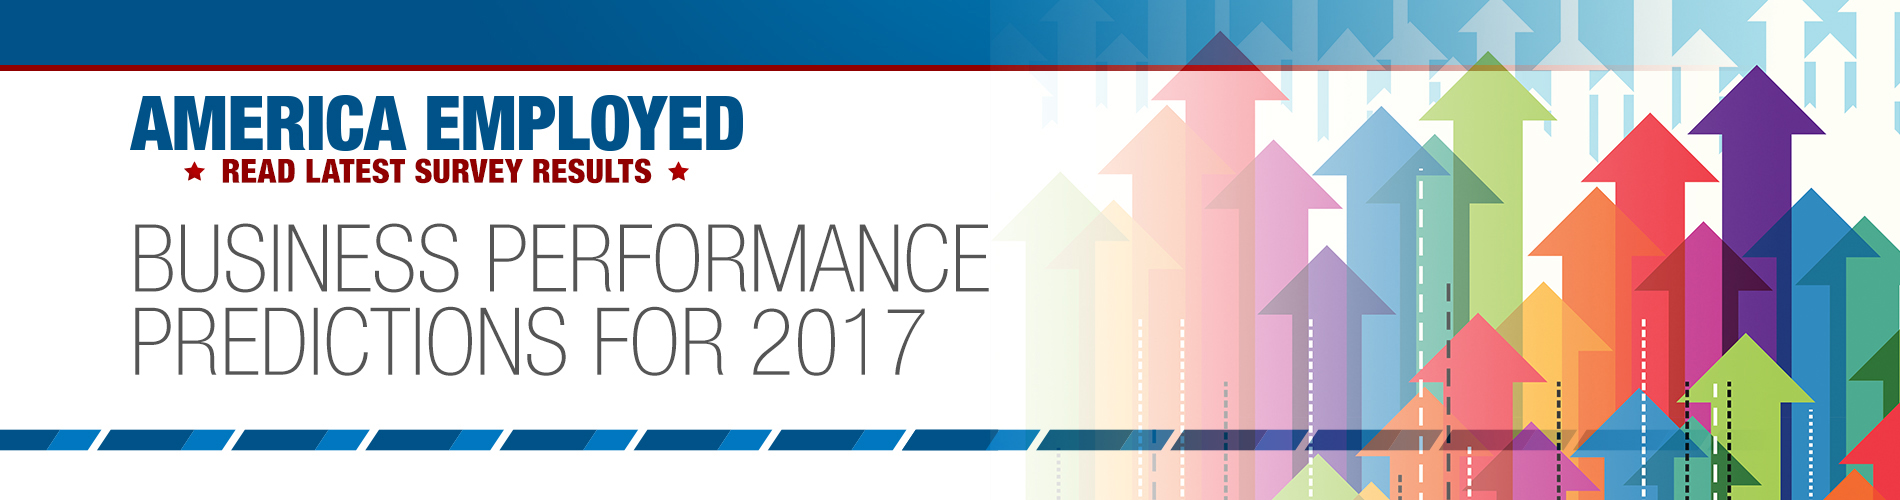 Business Performance Predictions for 2017